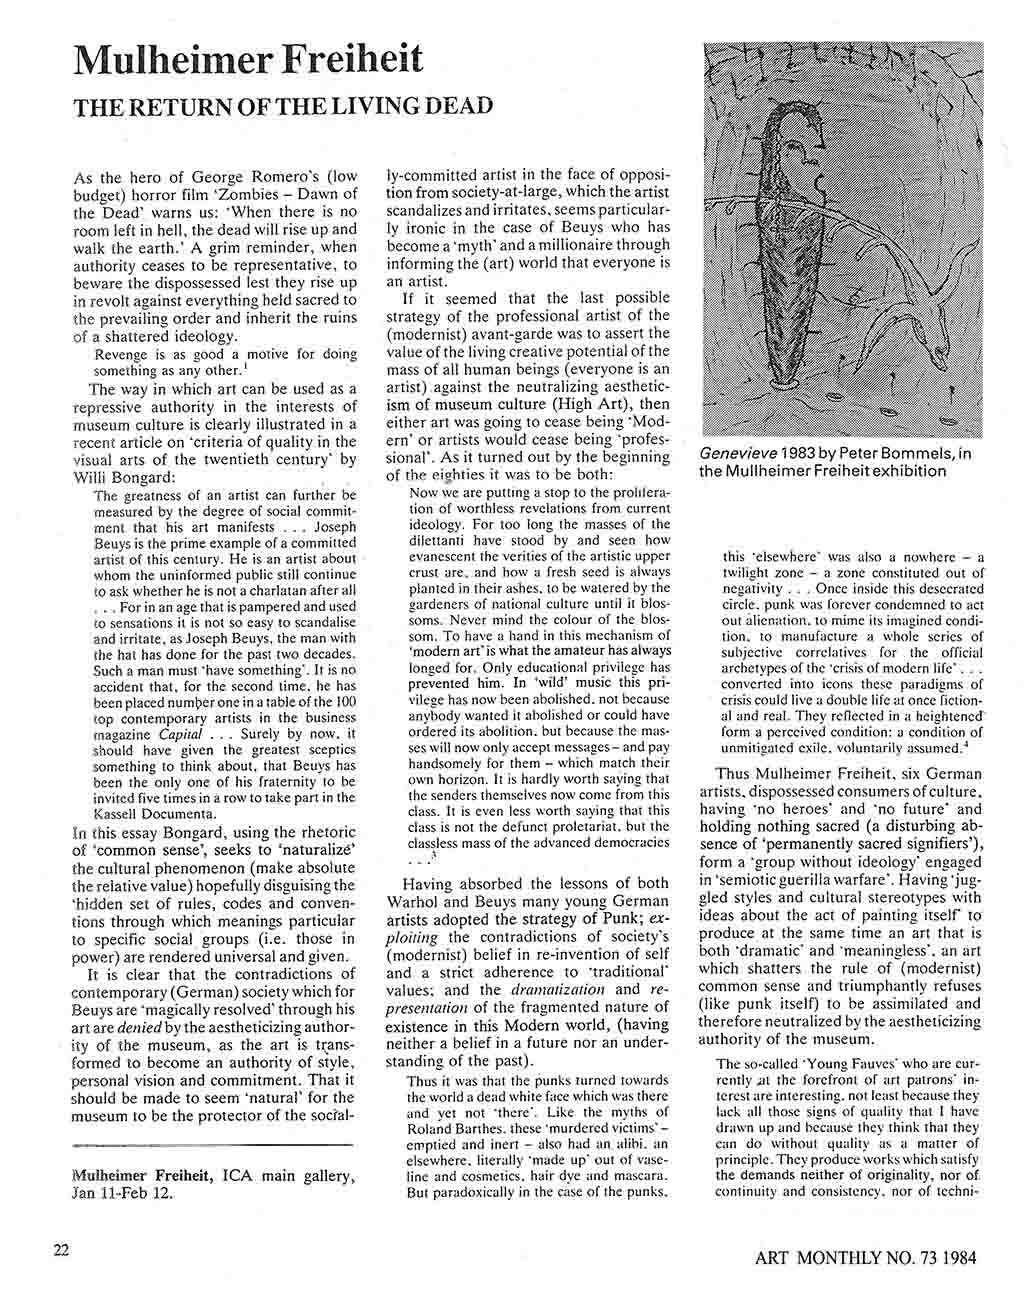 The Return of the Living Dead Review of Mulheimer Freiheit Art Monthly No 73 Feb 1984